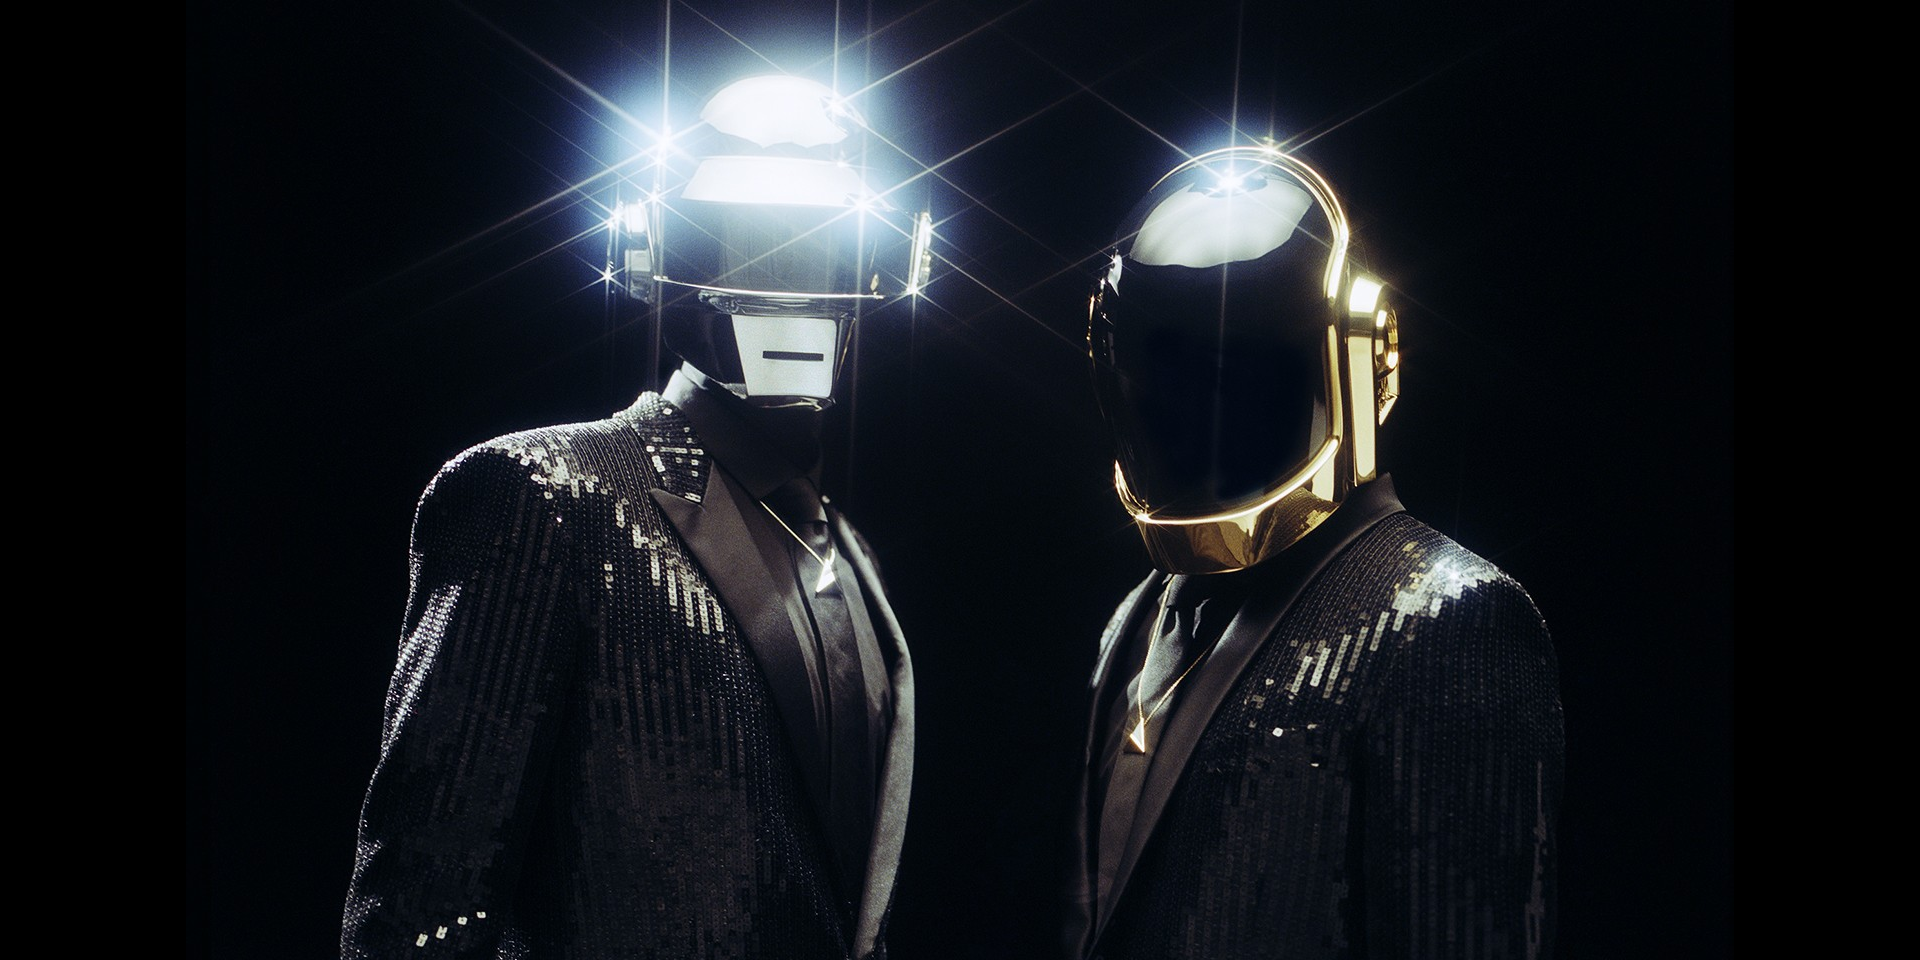 Daft Punk split up after 28 years: musicians and artists react